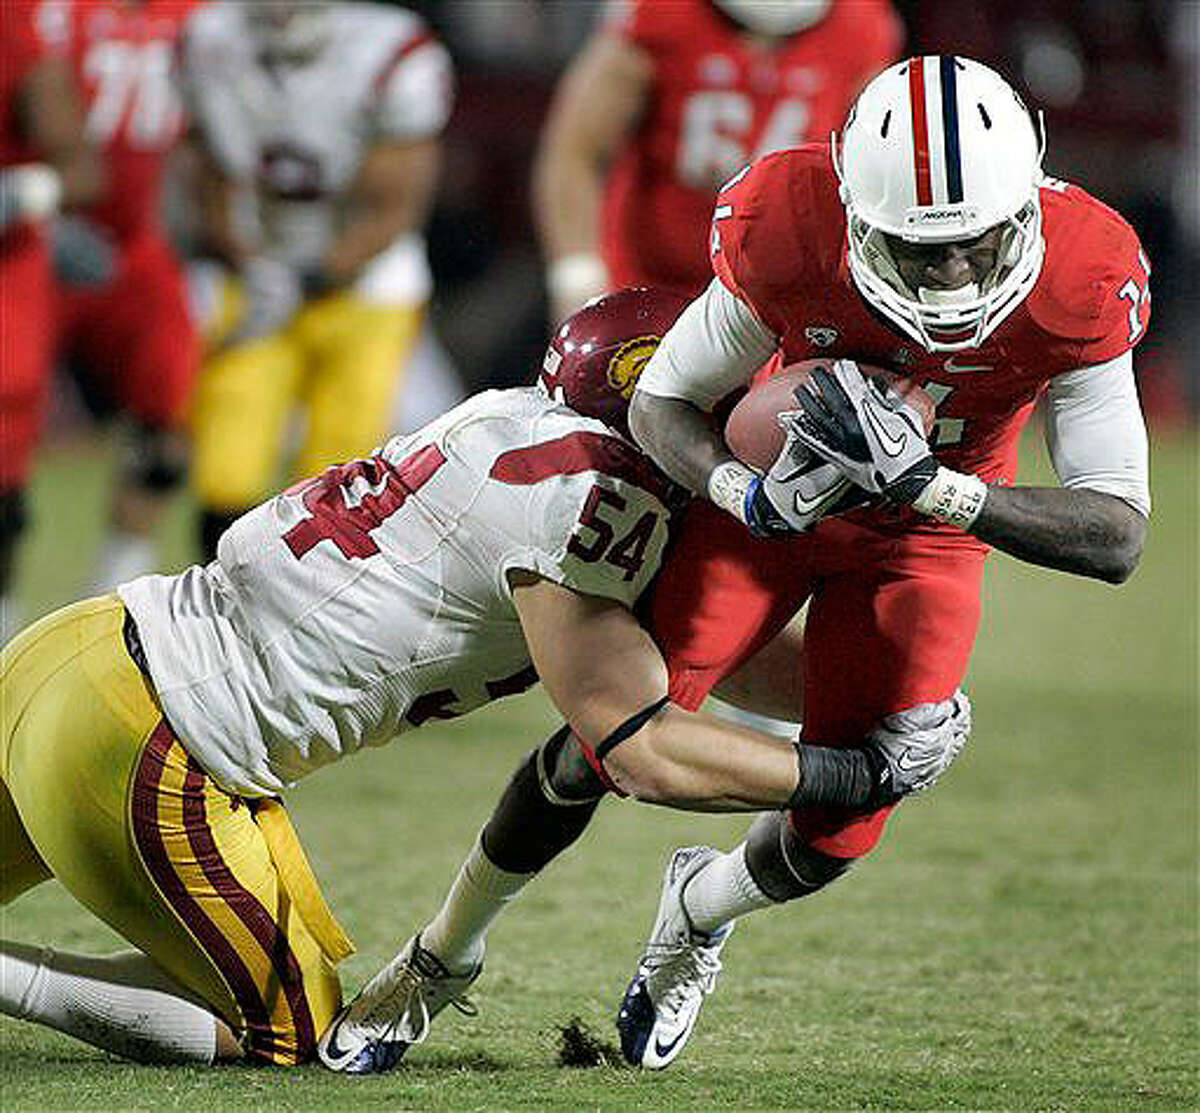 Arizona's Richard Morrison (14) is dragged down by USC's Chris Galippo (54) after a short gain on Nov. 13, 2010.